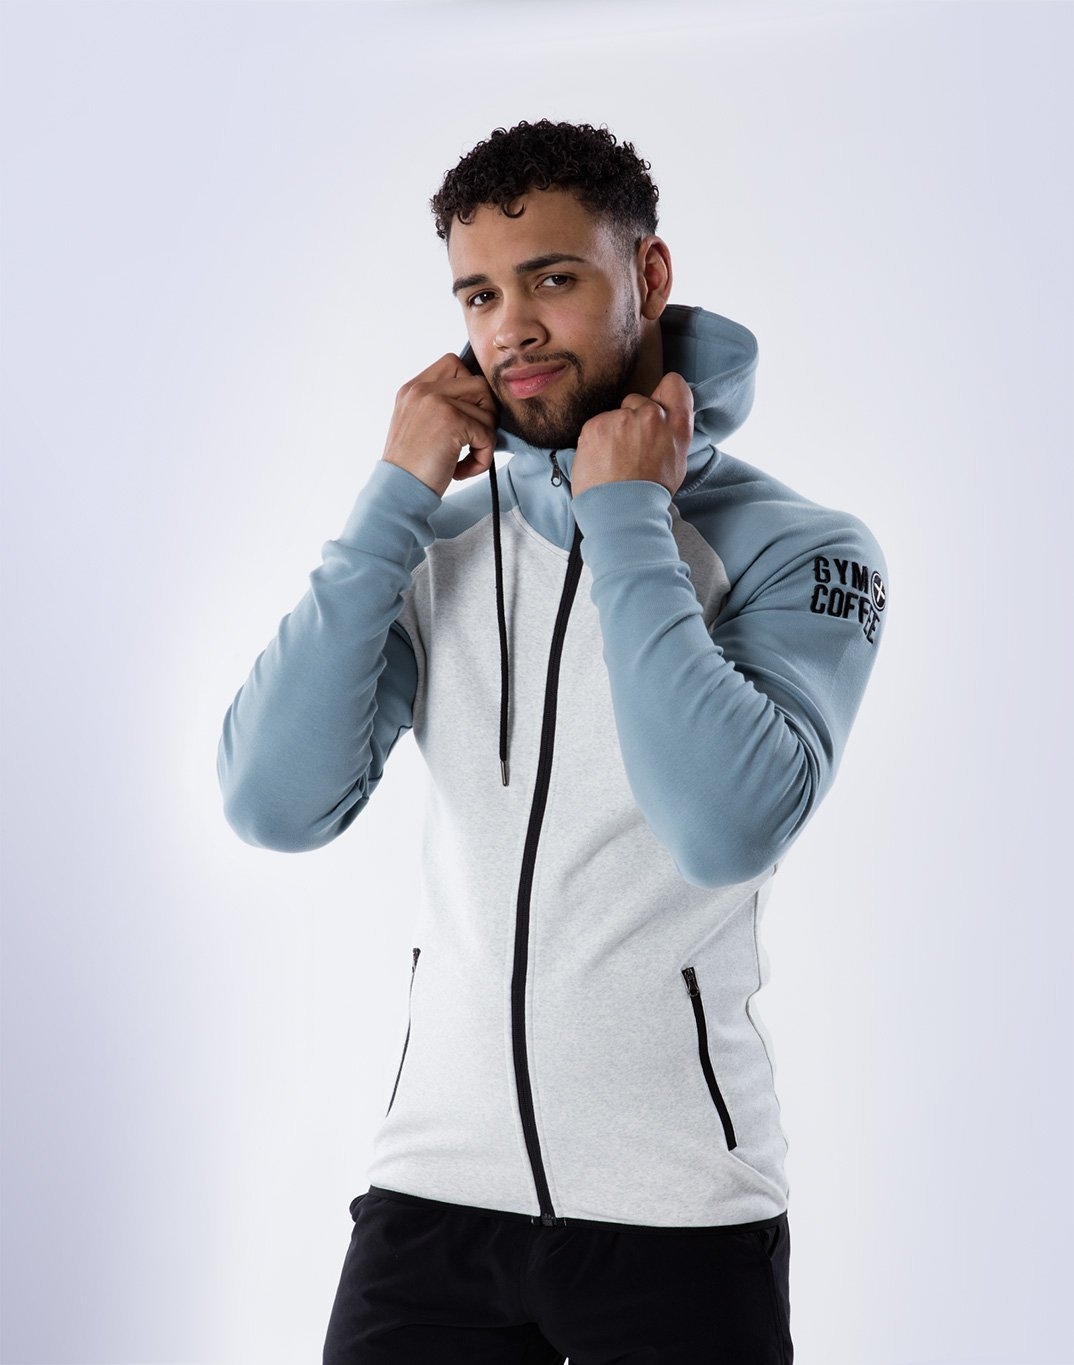 Gym Plus Coffee Hoodie Chill 2Tone Hoodie in Cream/ Steel Blue Designed in Ireland